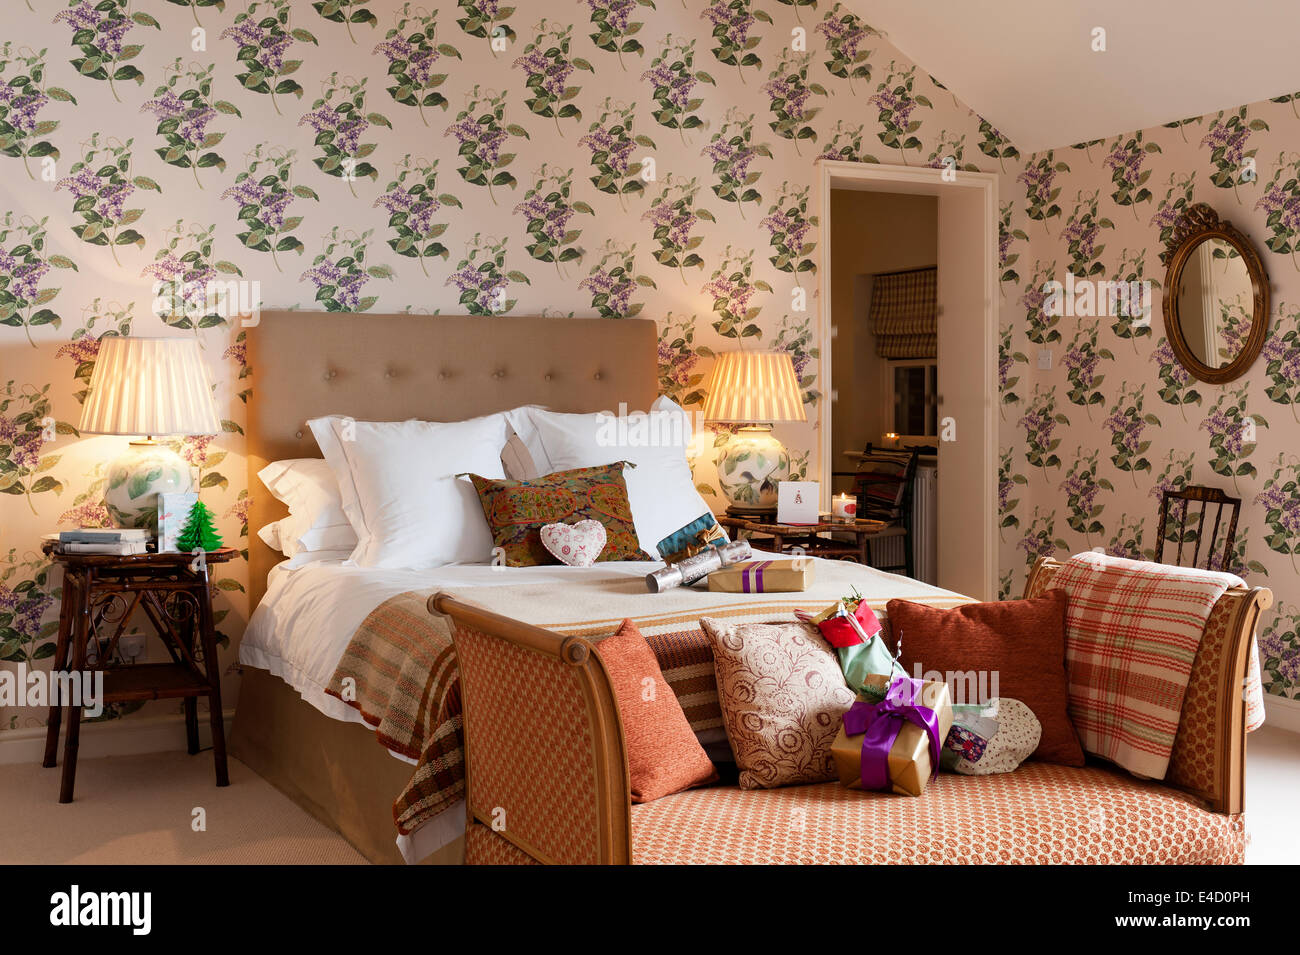 An Edwardian day bed in original upholstery sits at the end of a bed in a bedroom with floral patterned wallpaper - Stock Image